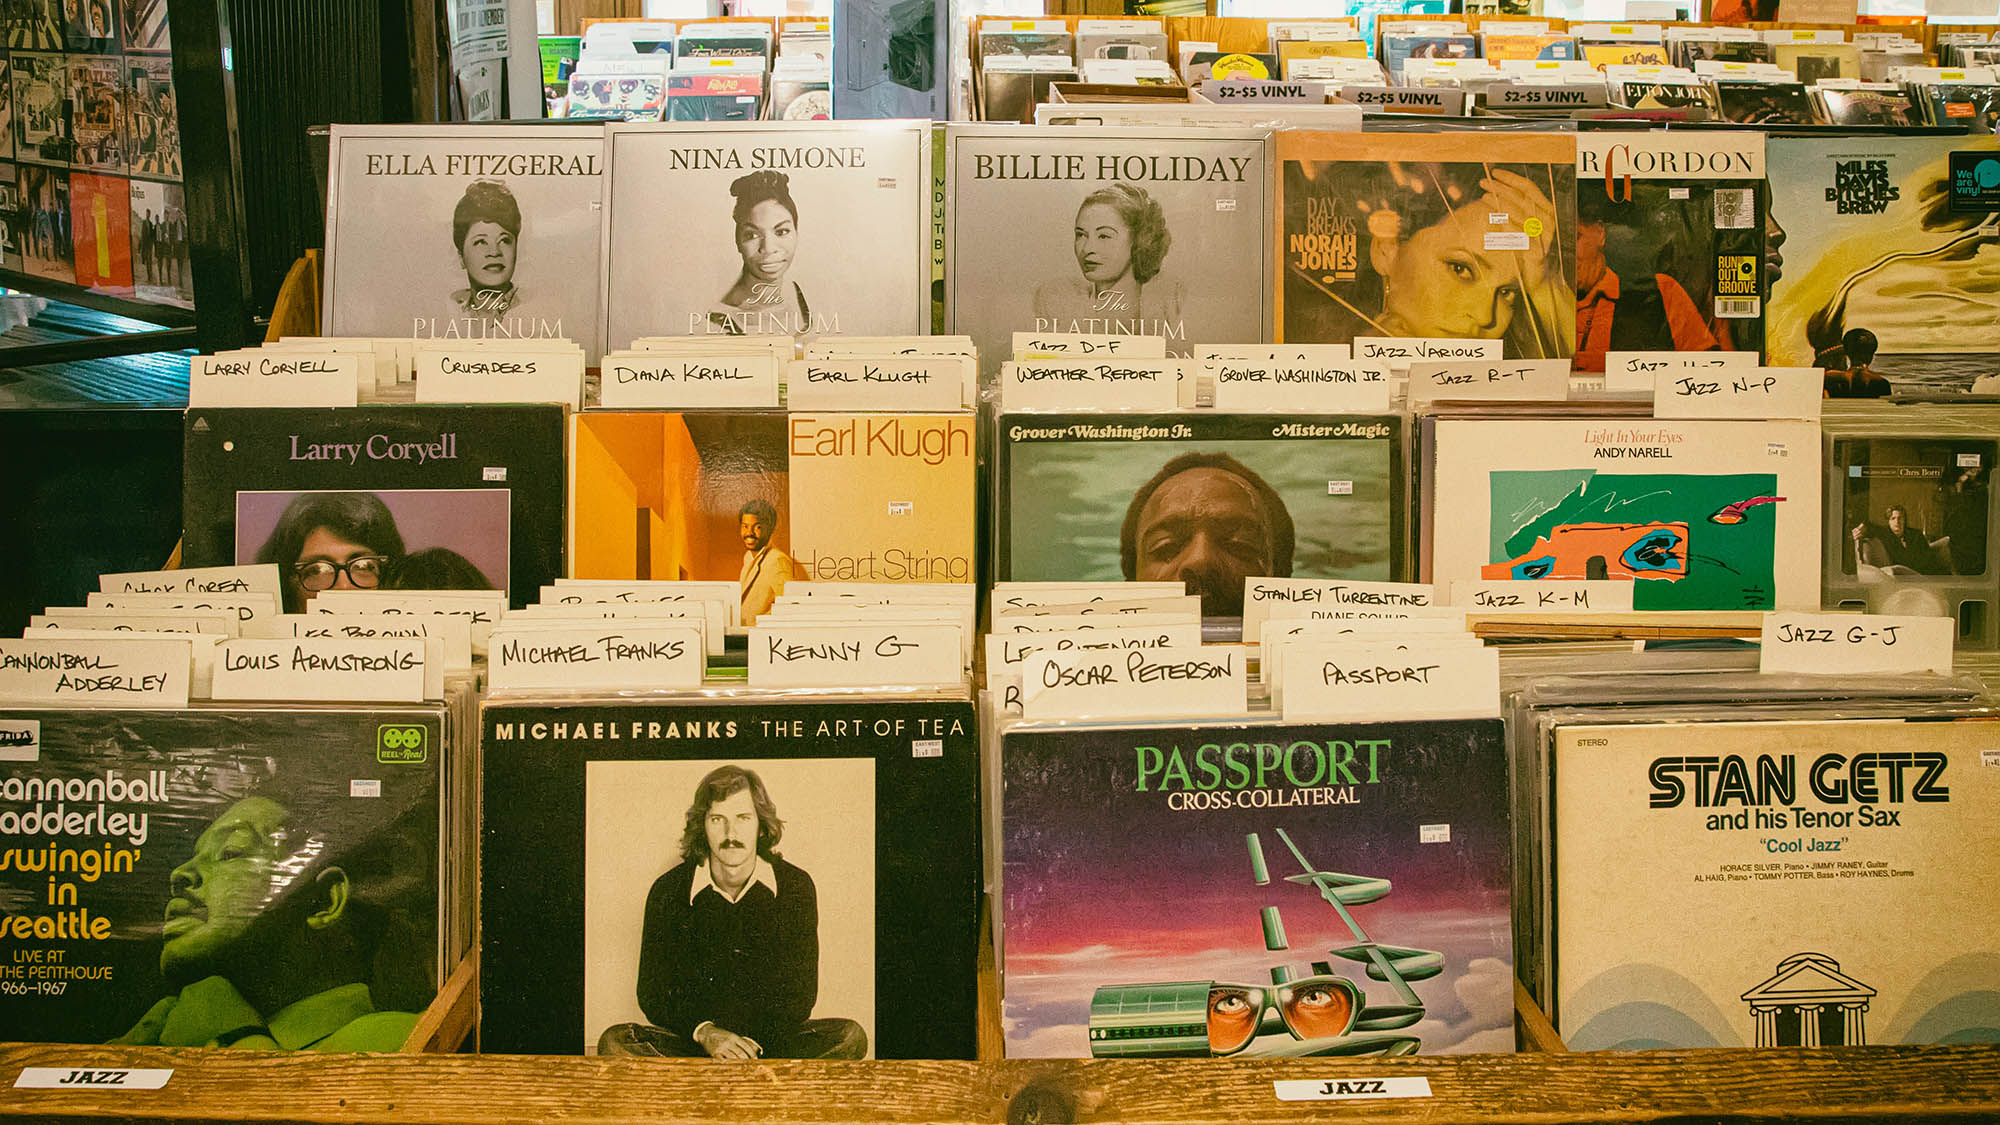 Jazz records on store shelf